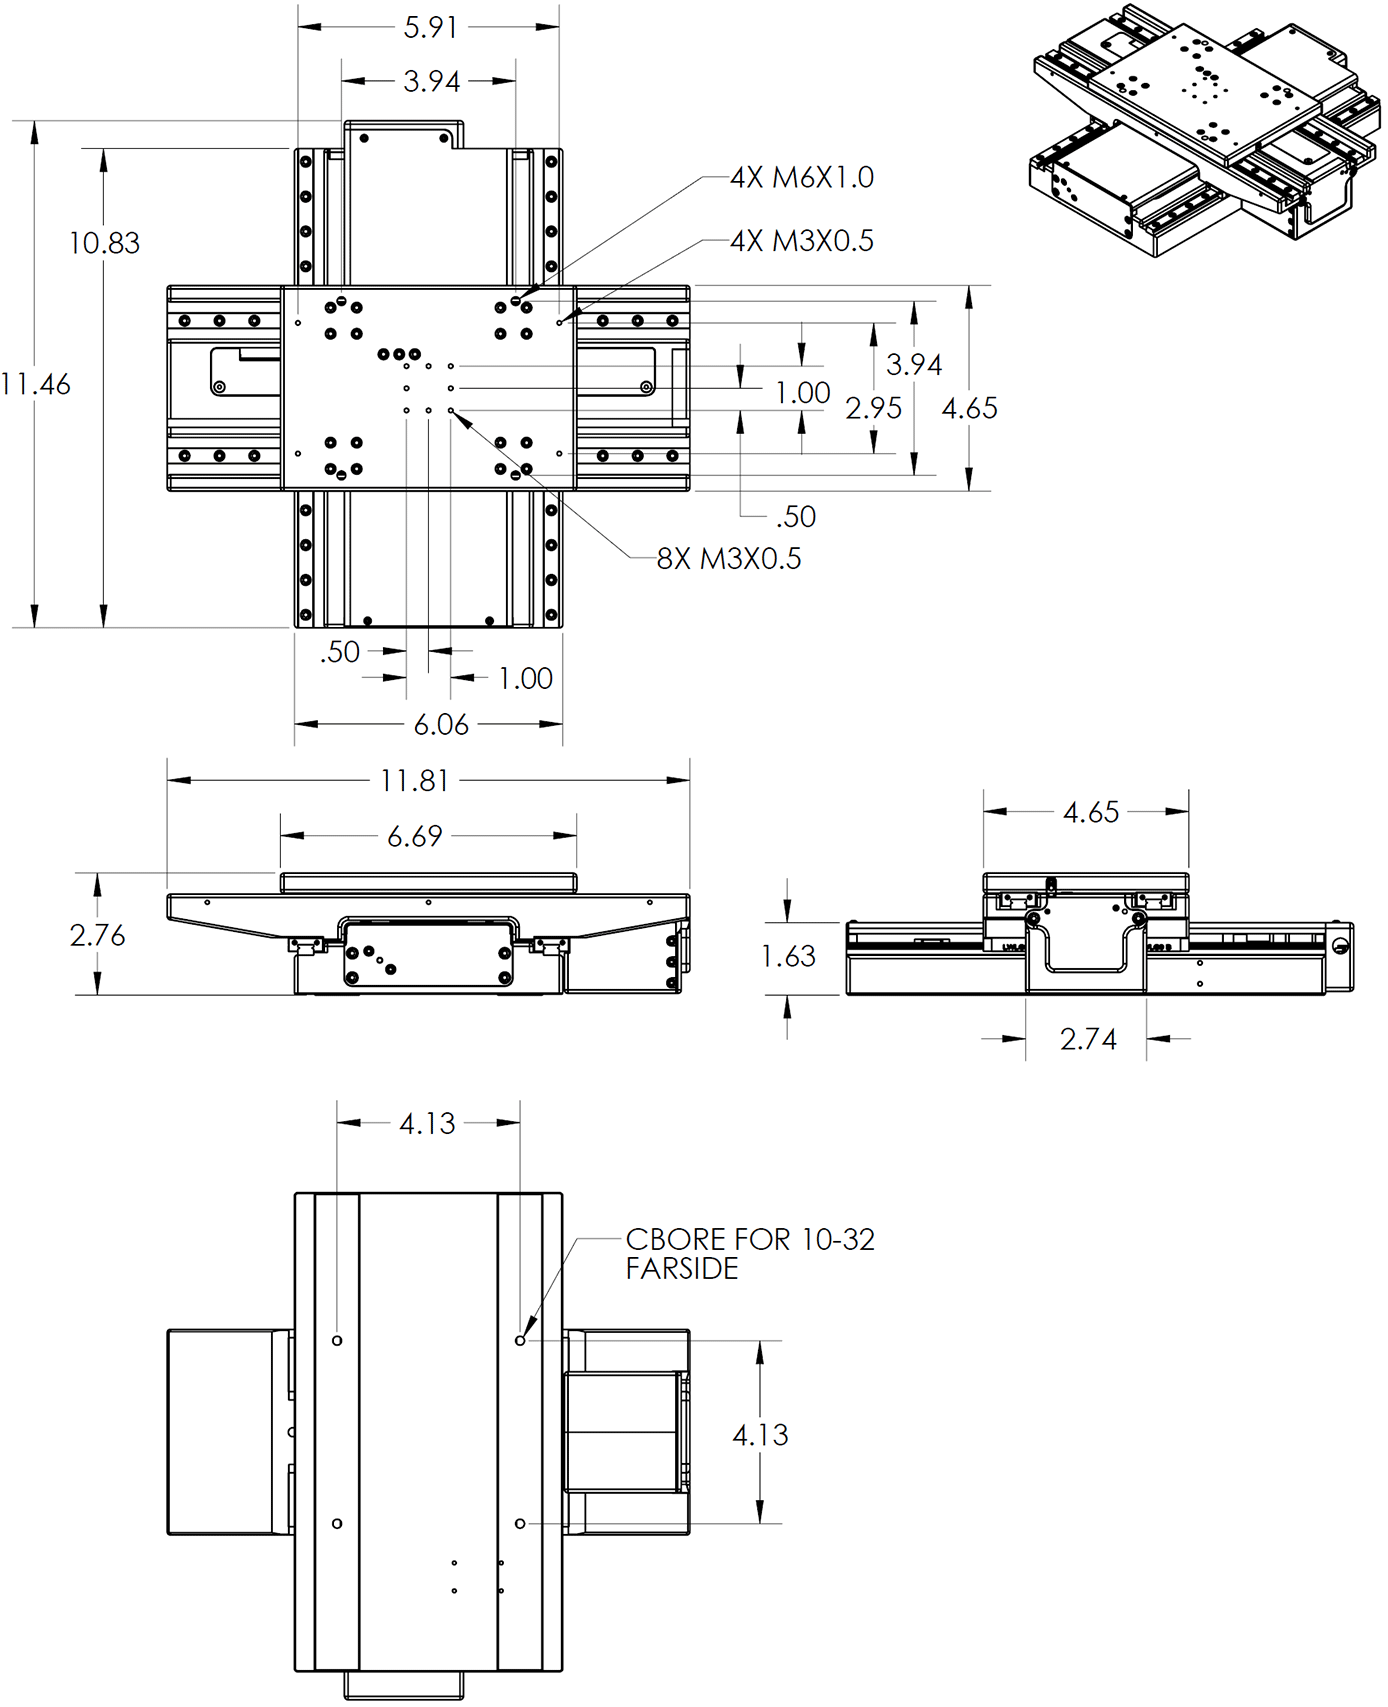 LP150 Low Profile X-Y Stage Dimension Drawings